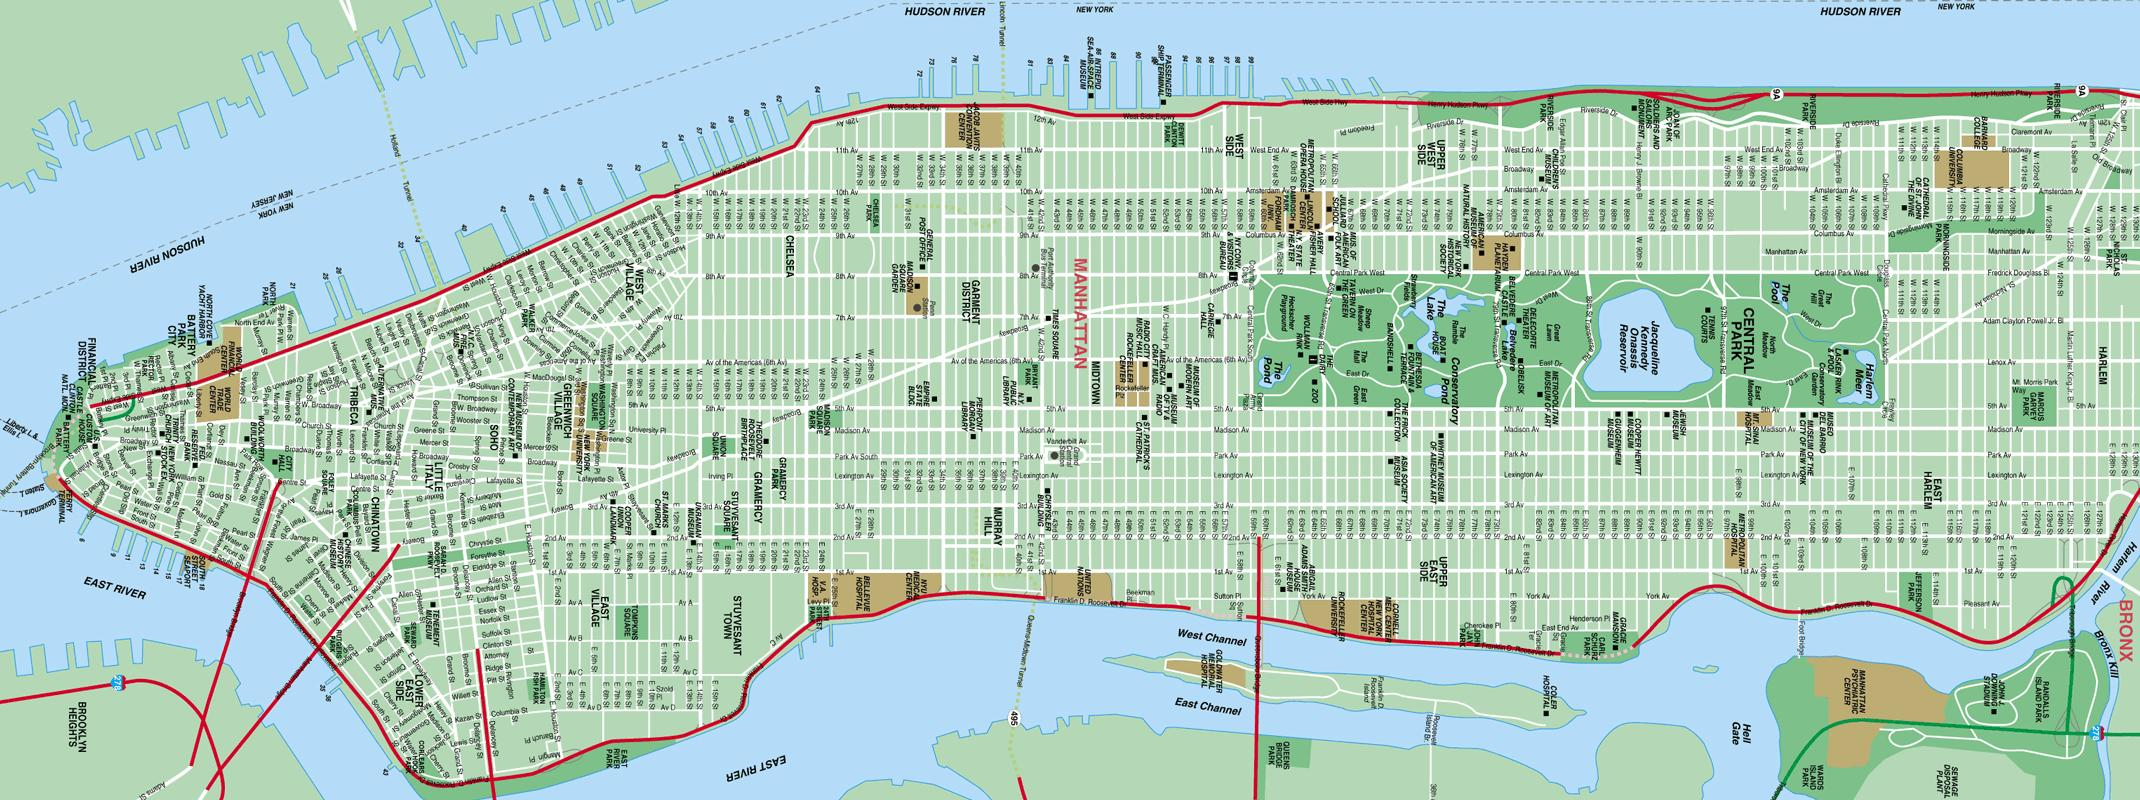 new york city map app with Las Matematicas Del Taxi on 10563578855 additionally Measuring Airbnbs Real Threat To U S Hotels Using Industry Metrics moreover 6250 besides Iran Freedom Navigation Persian Gulf further 2127000034.